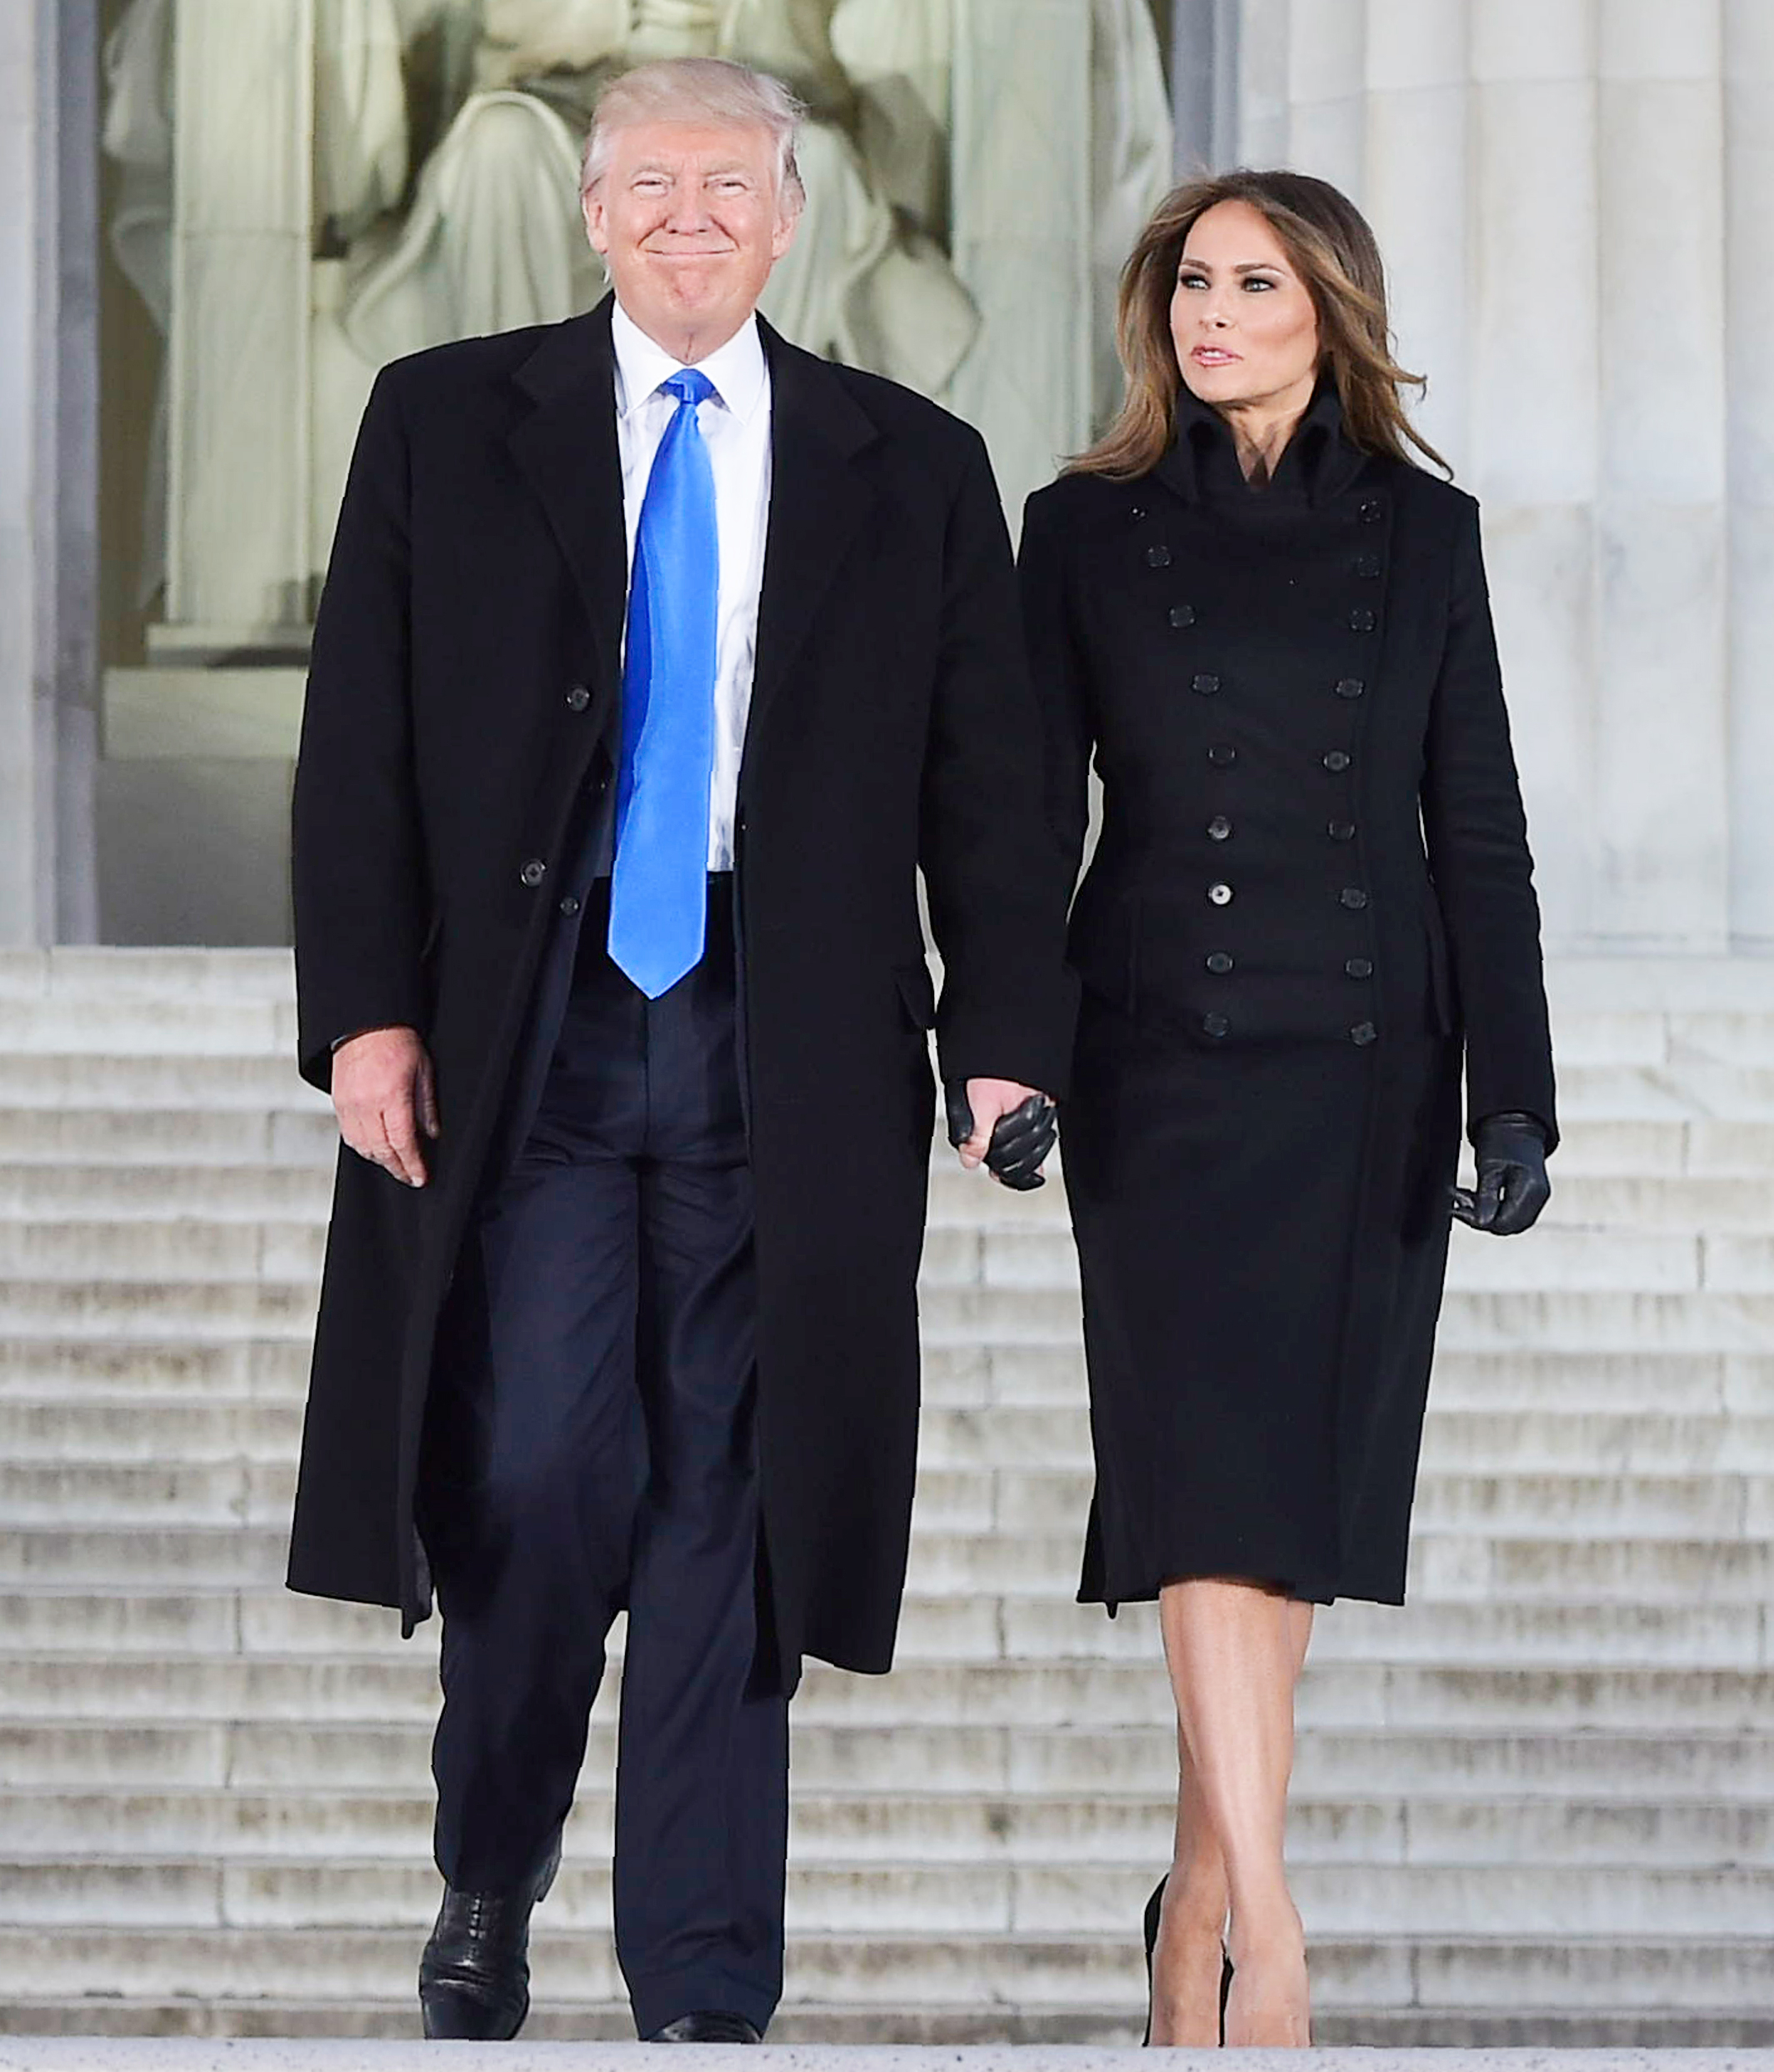 US President-elect Donald Trump and his wife Melania arrive to attend an inauguration concert at the Lincoln Memorial in Washington, DC, on January 19, 2017.